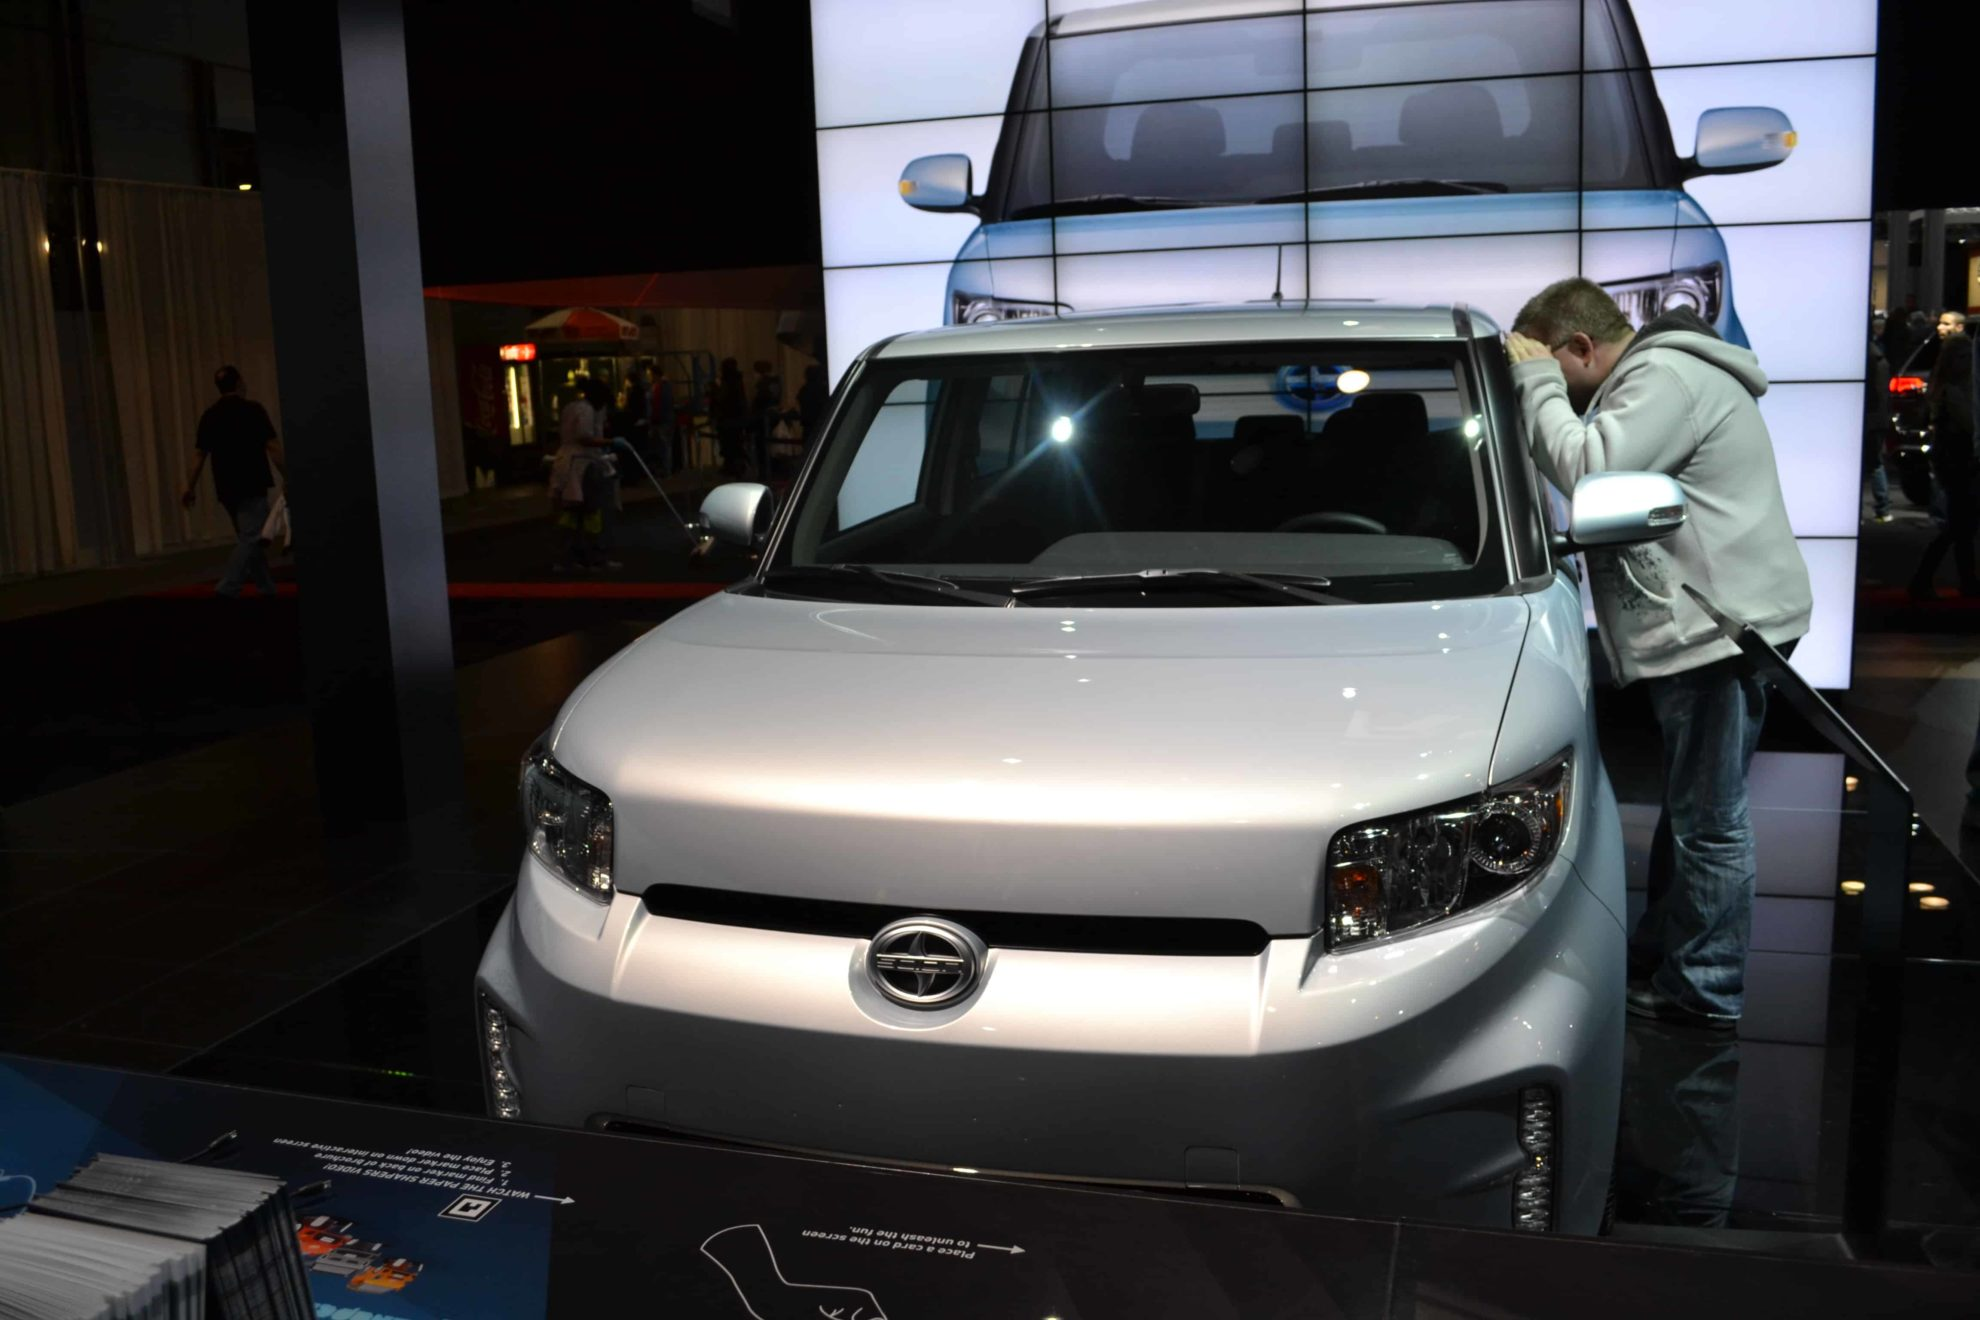 New York Auto Show, family car, Scion xB